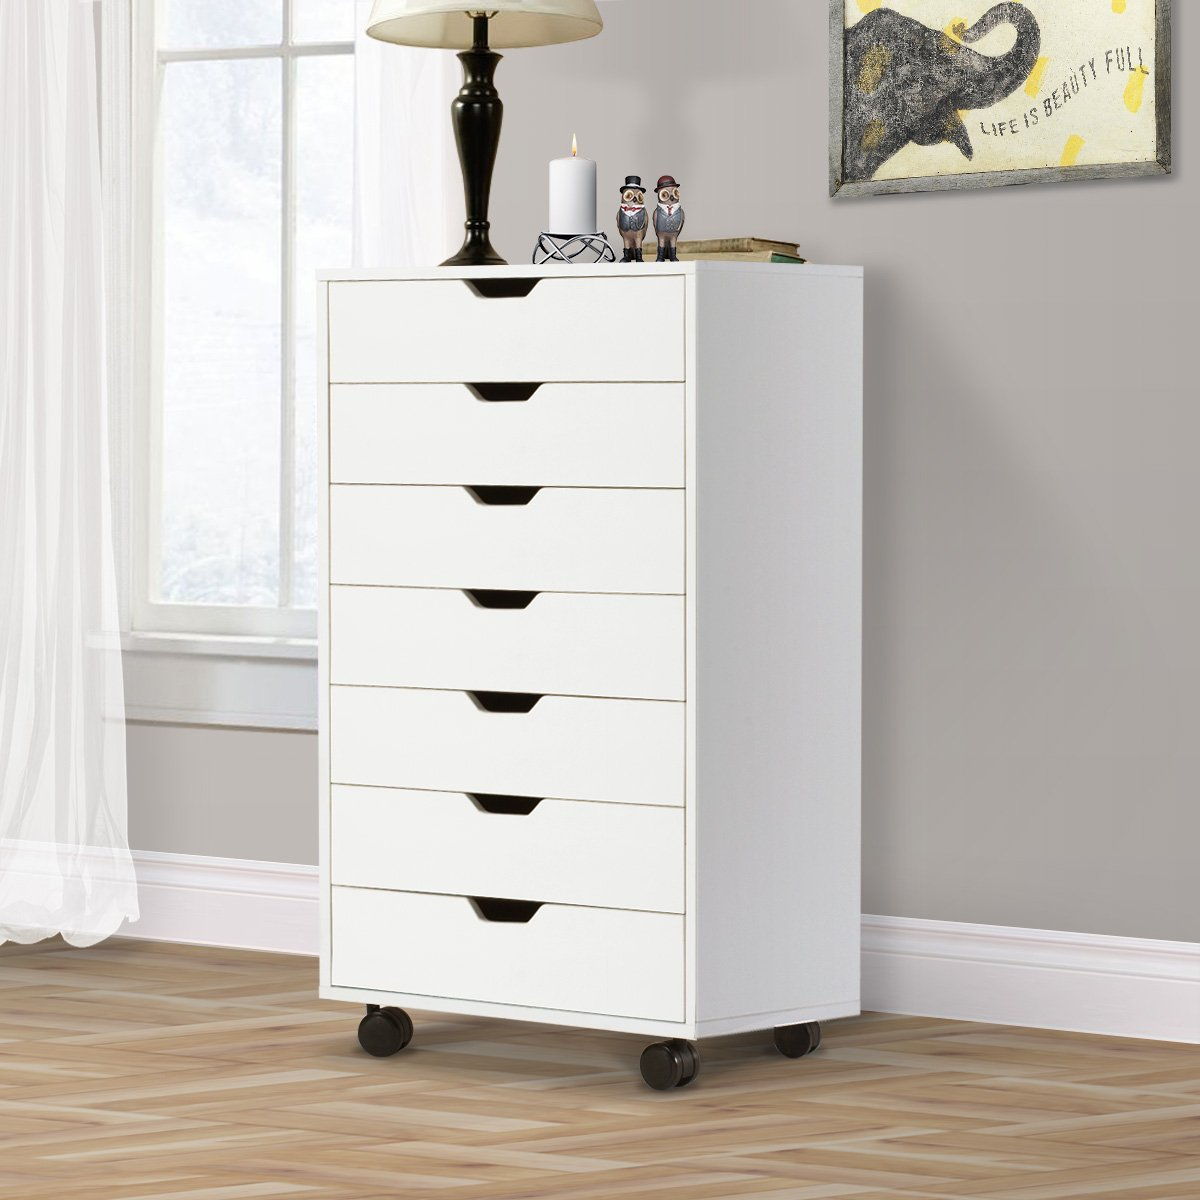 Dresser With Cabinet Amazoncom 7 Drawers Chest Storage Dresser Cabinet On Removable